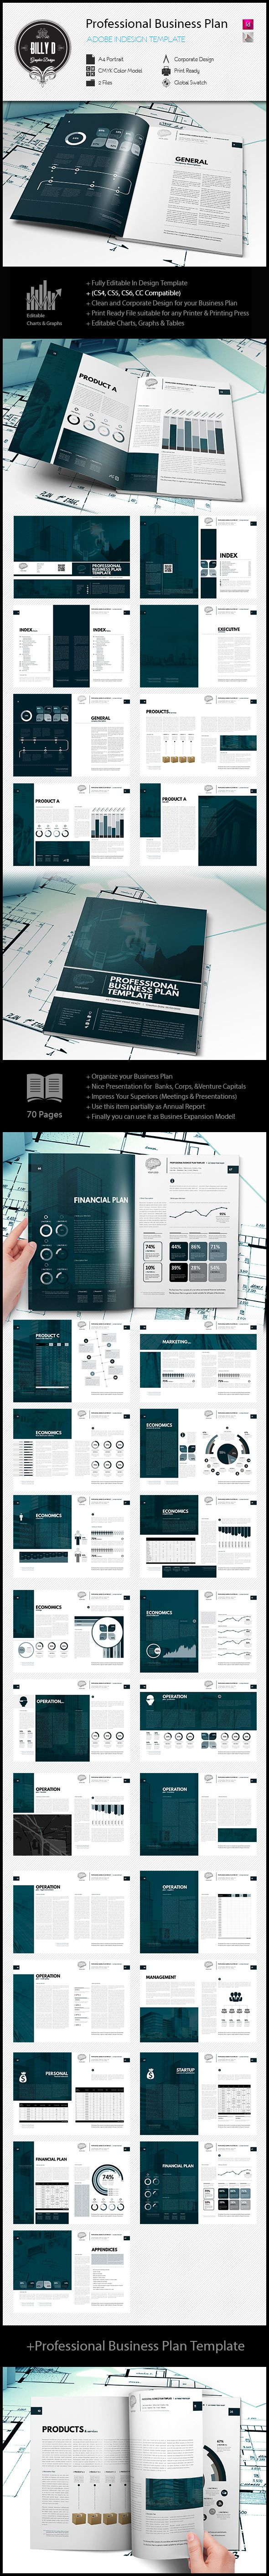 Professional Business Plan Template | The business plan consists of a narrative and several financial worksheets. The narrative template is the body of the business plan. It contains more than 150 questions divided into several sections. Work through the sections in any order that you like, except for the Executive Summary, which should be done last.